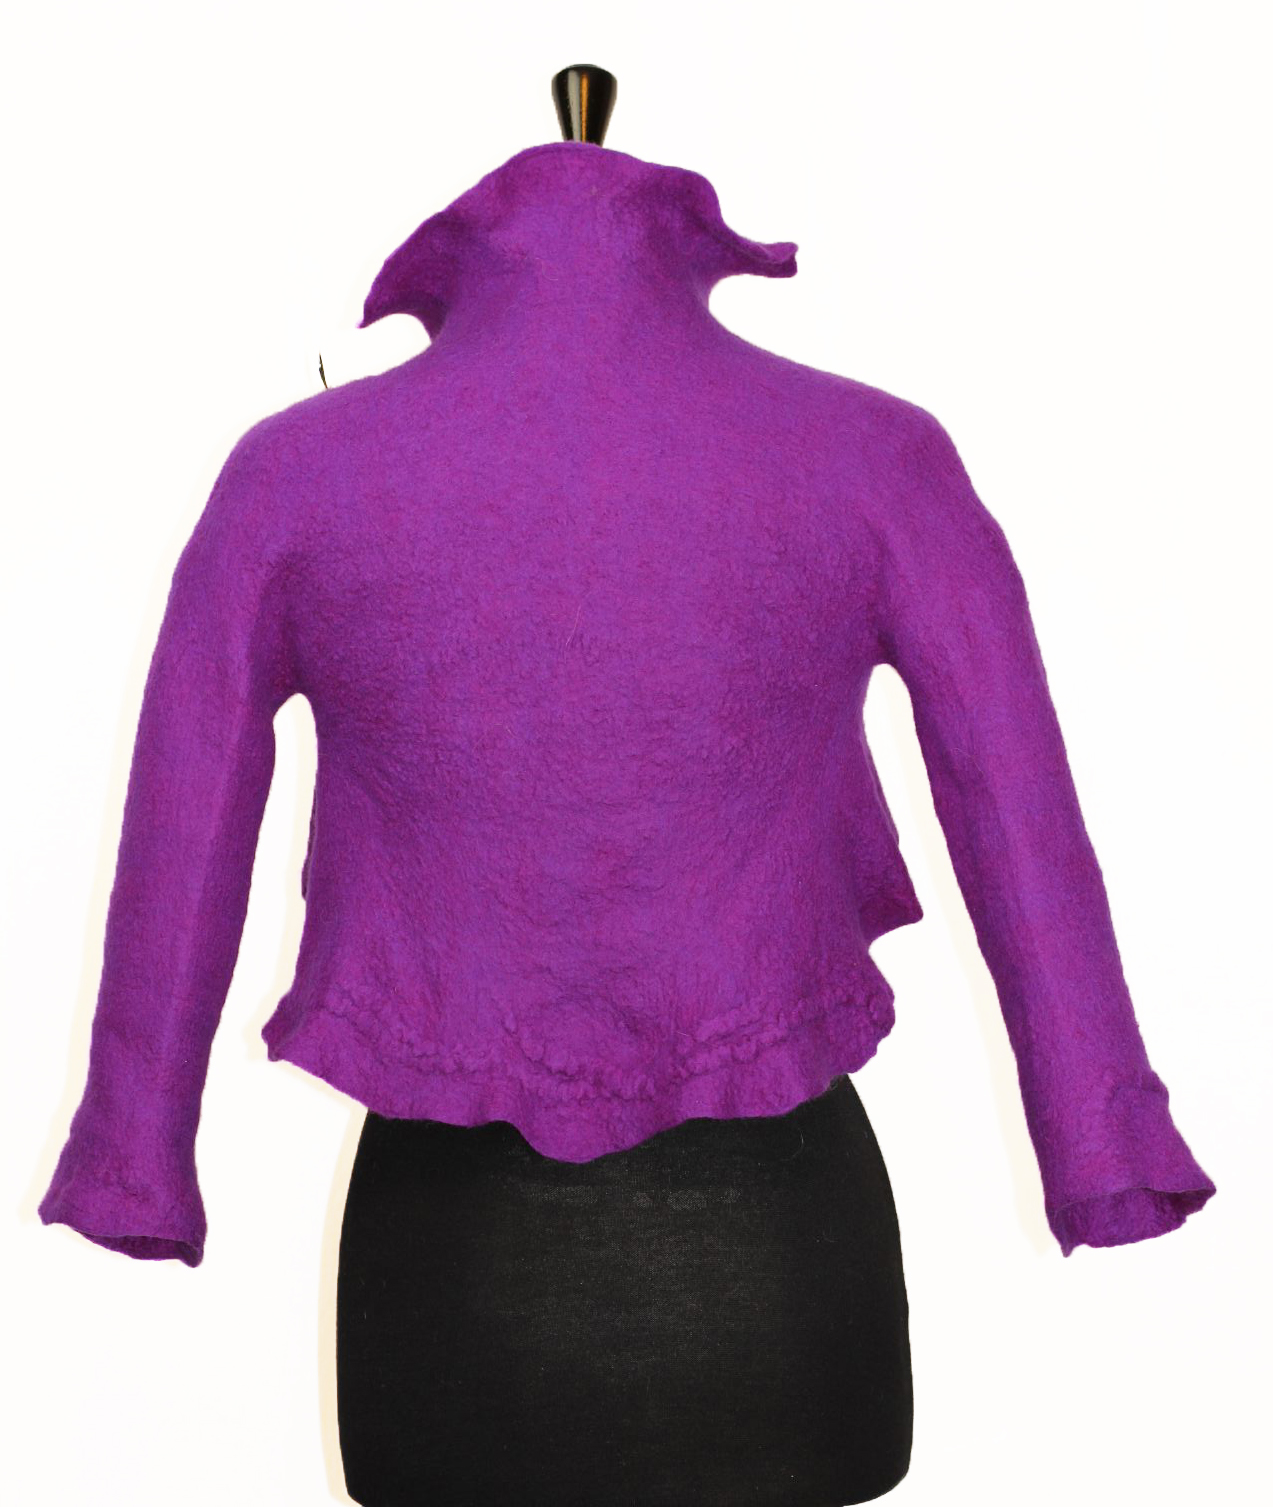 Cindy Anne Creations - Jacket